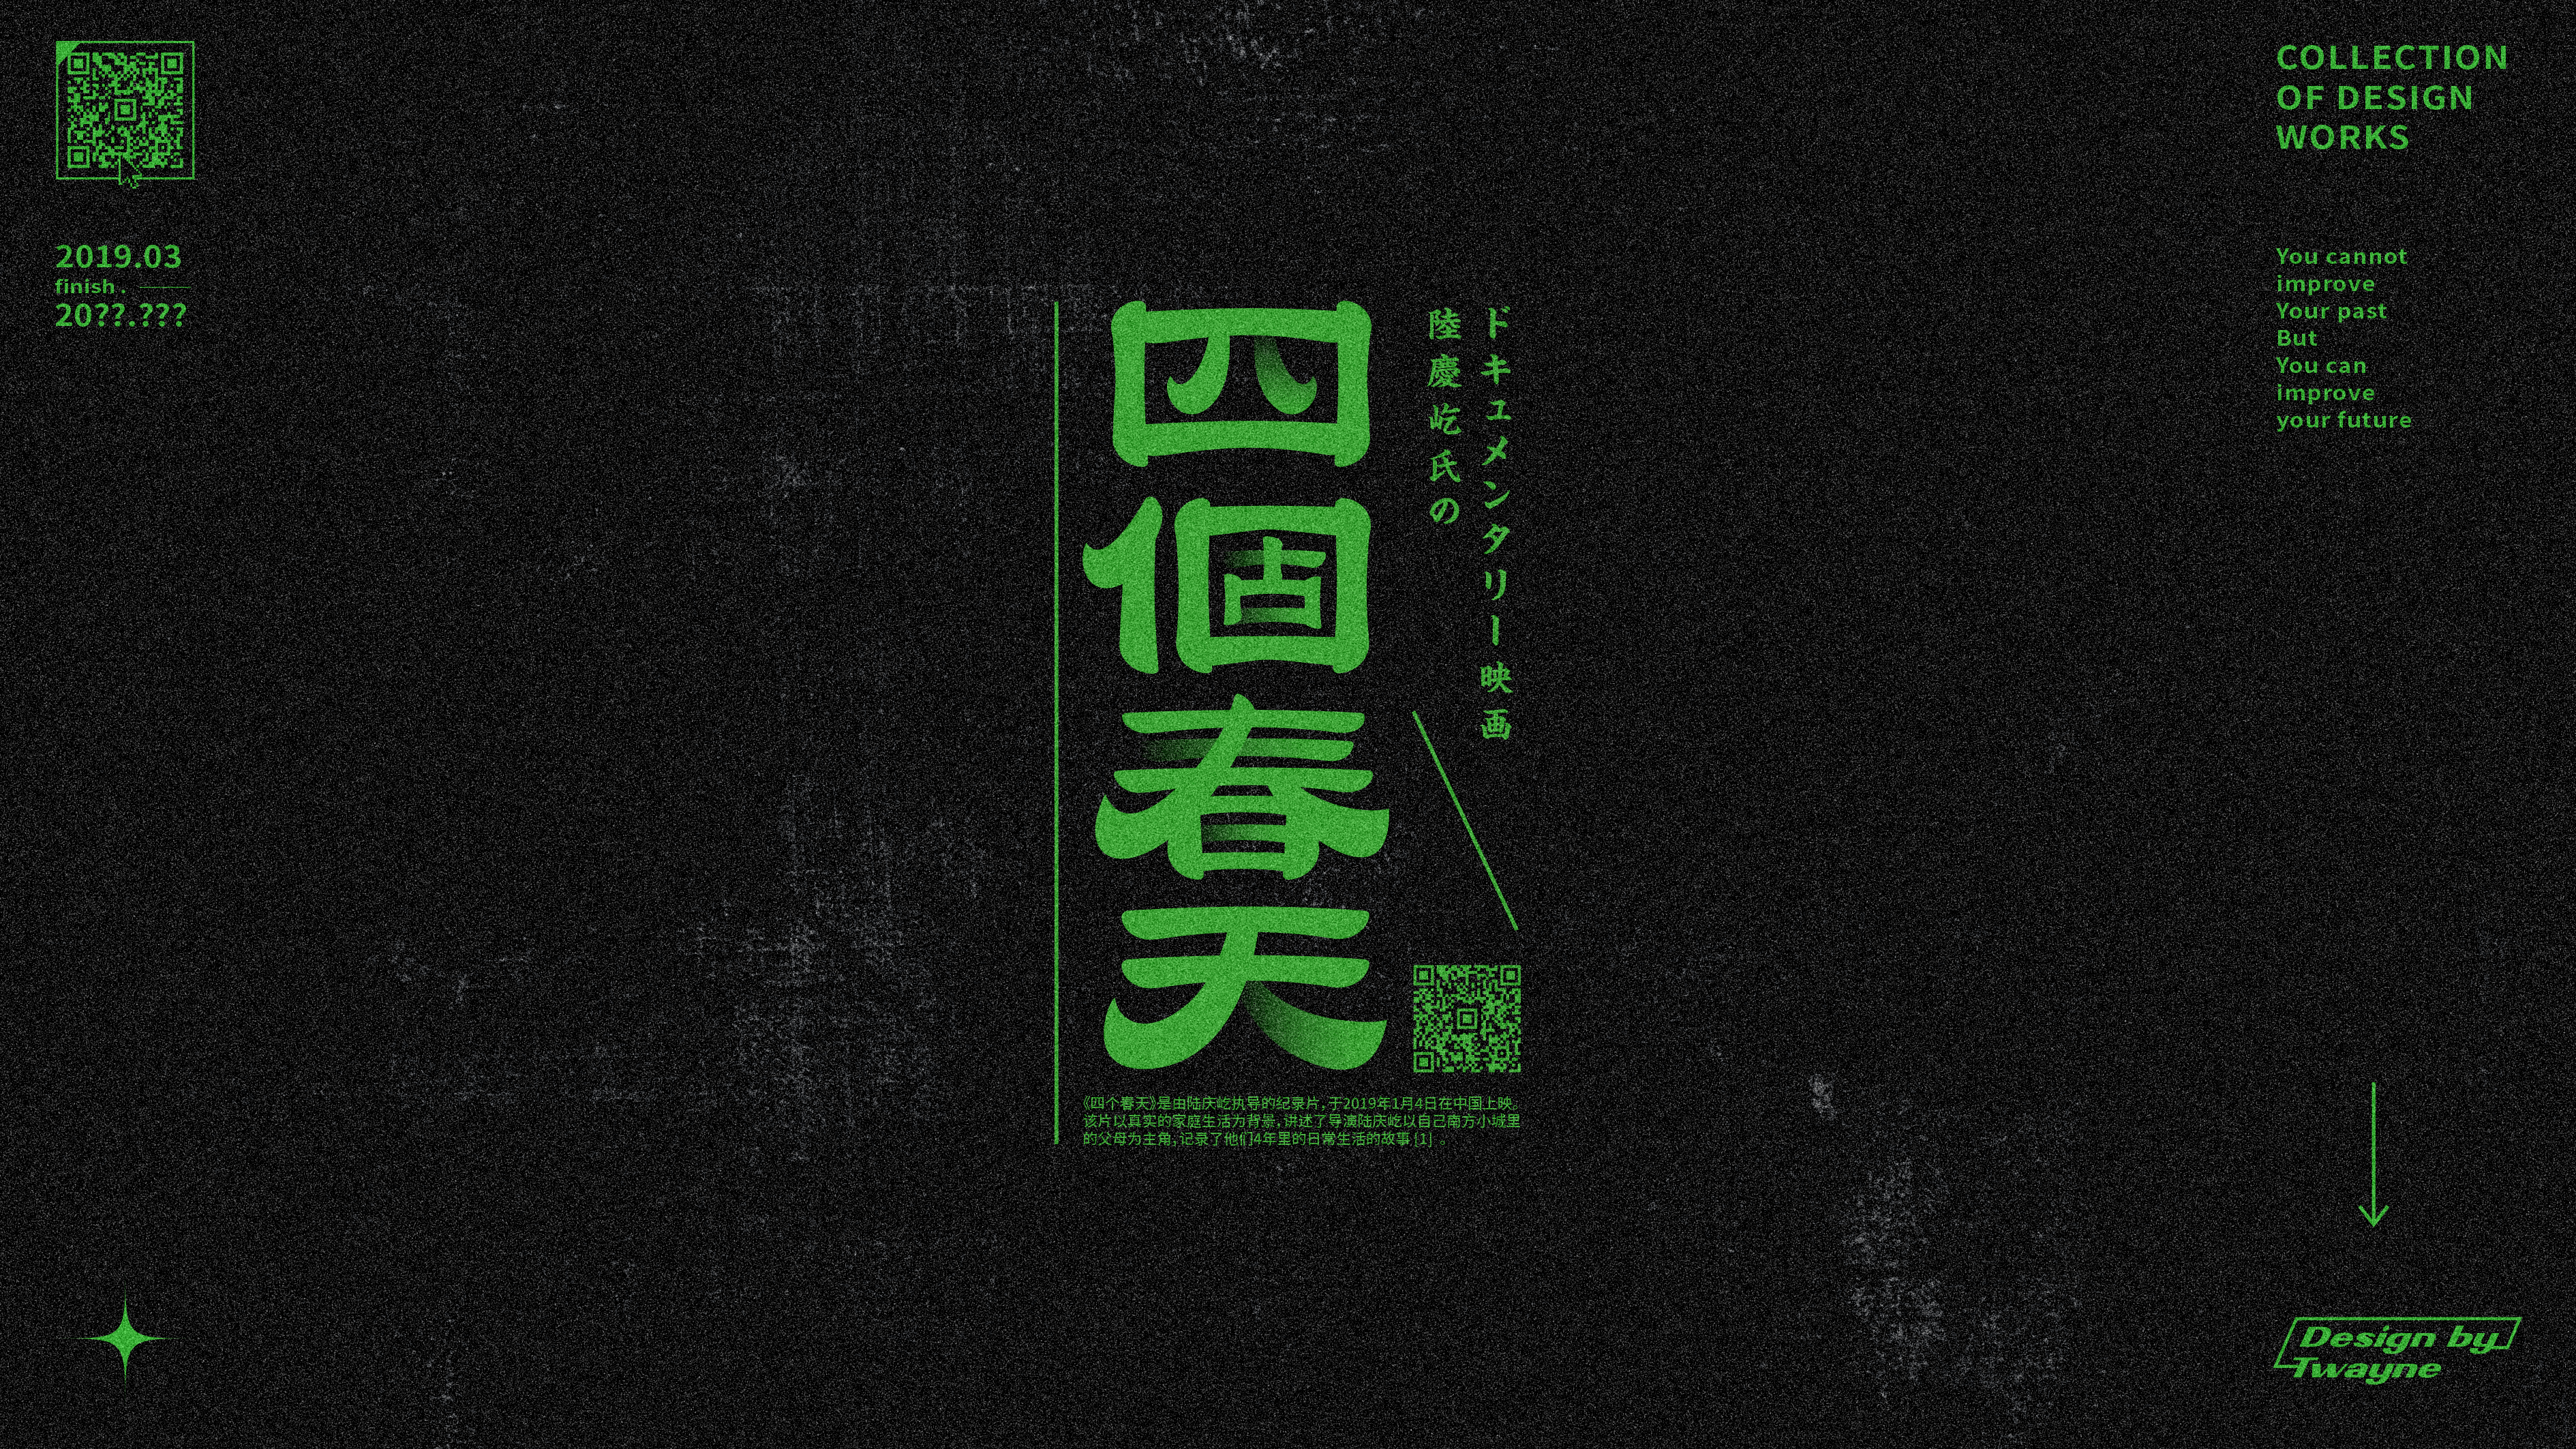 13P Collection of the latest Chinese font design schemes in 2021 #.229